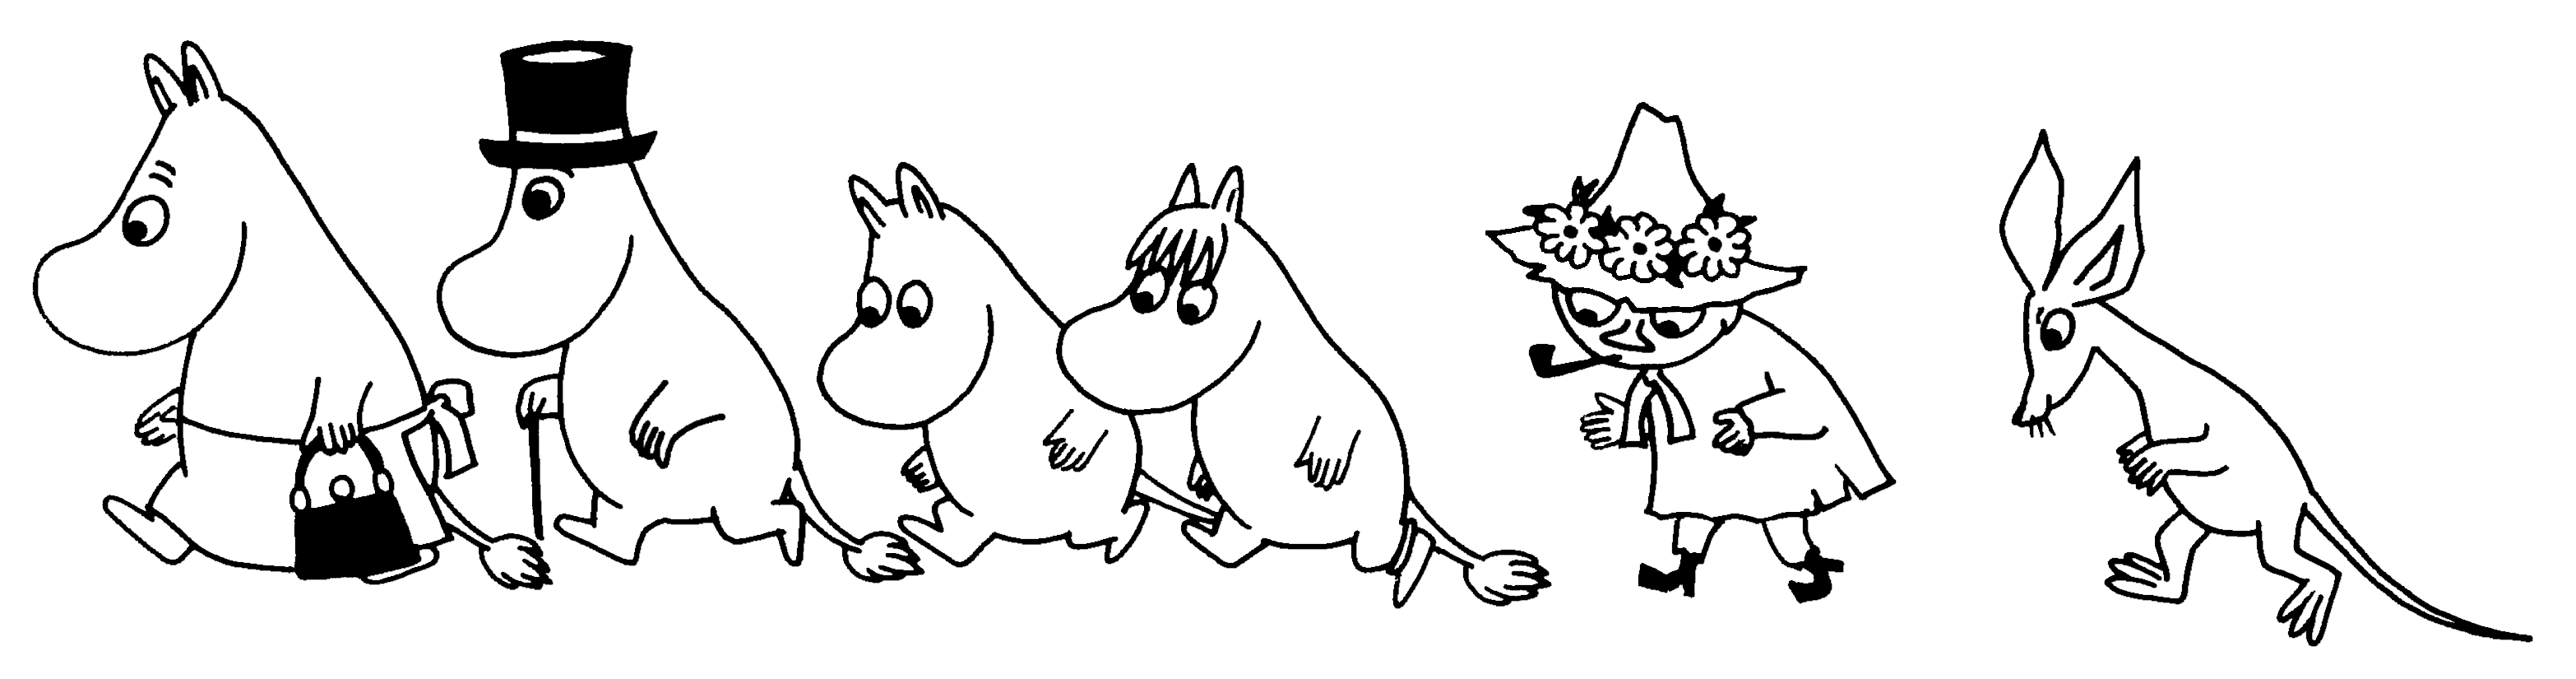 Moomin drawing. Press kit such as